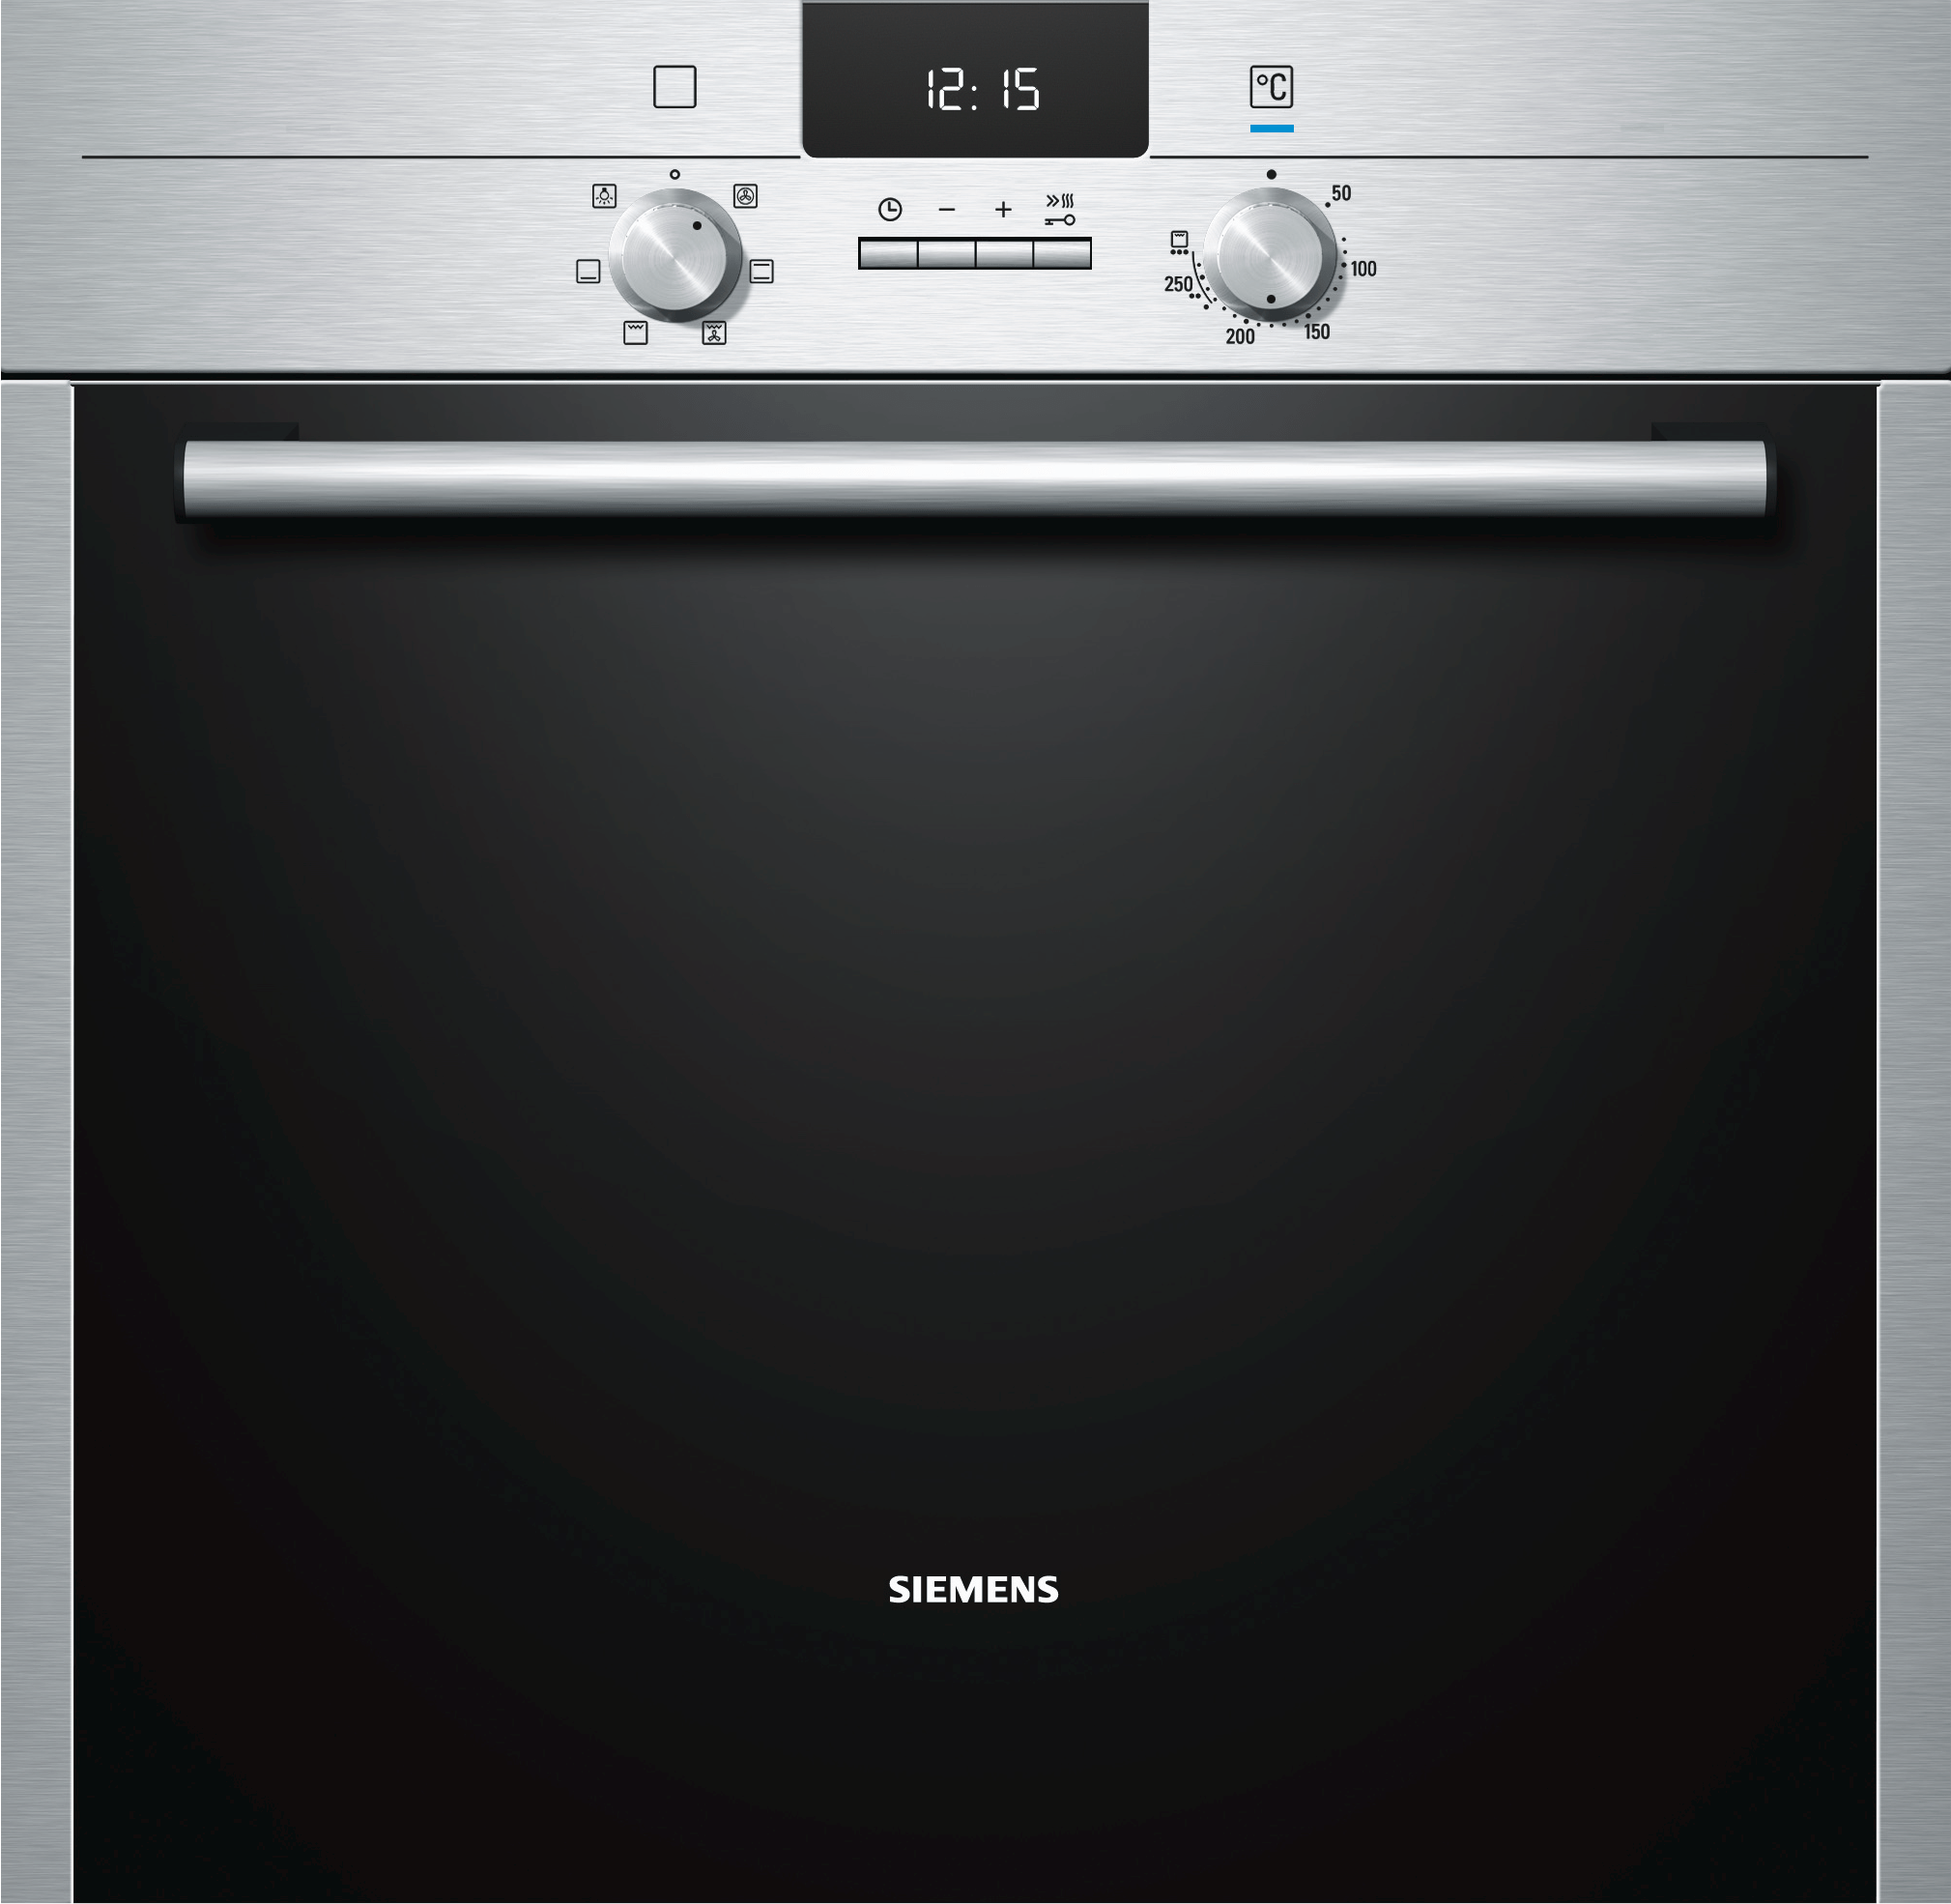 Siemens HB23AB523 Built-in Oven - prices and ratings | s 67 L Ltr ...